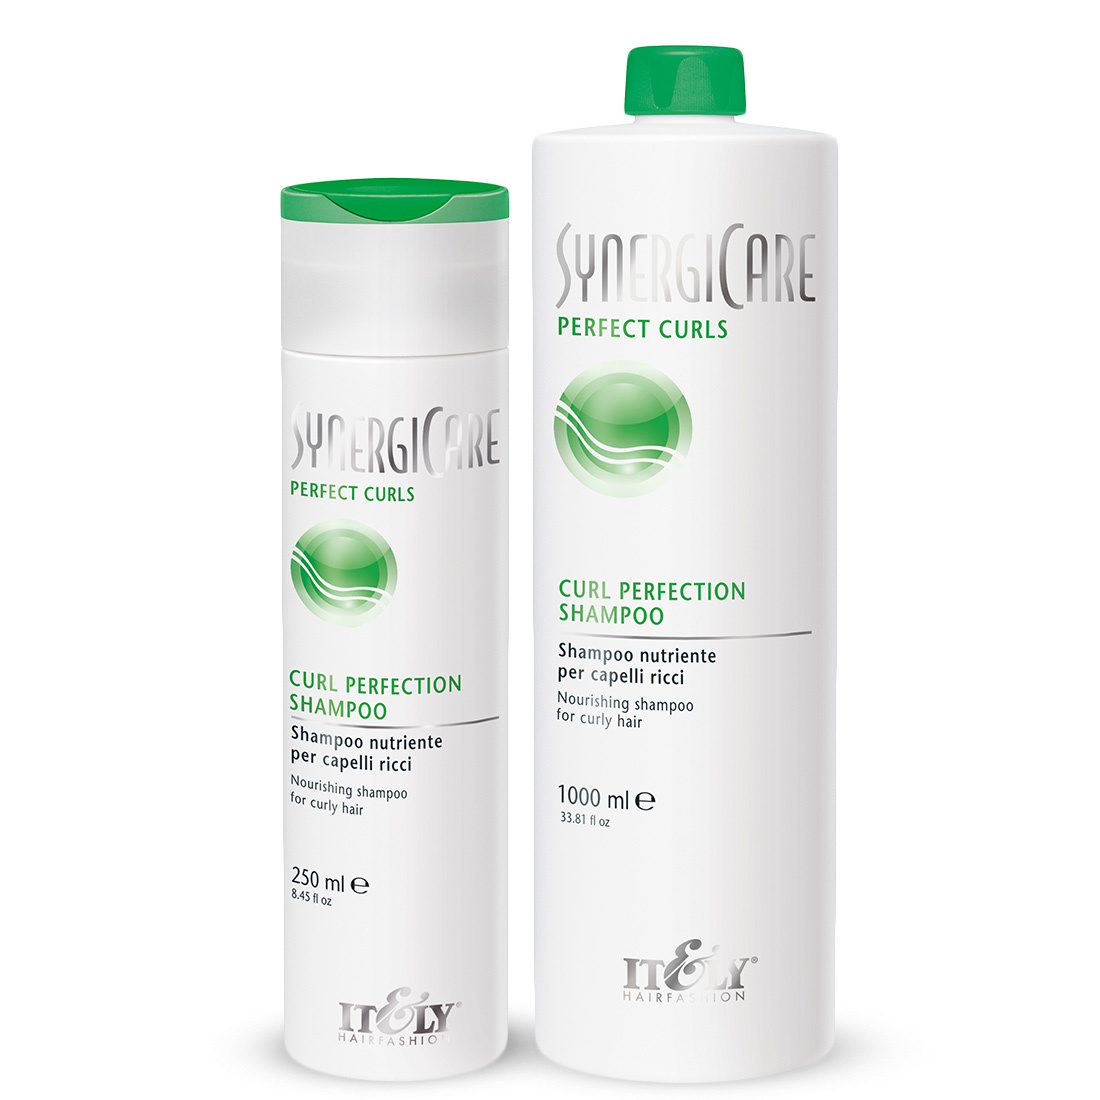 CURL PERFECTION SHAMPOO